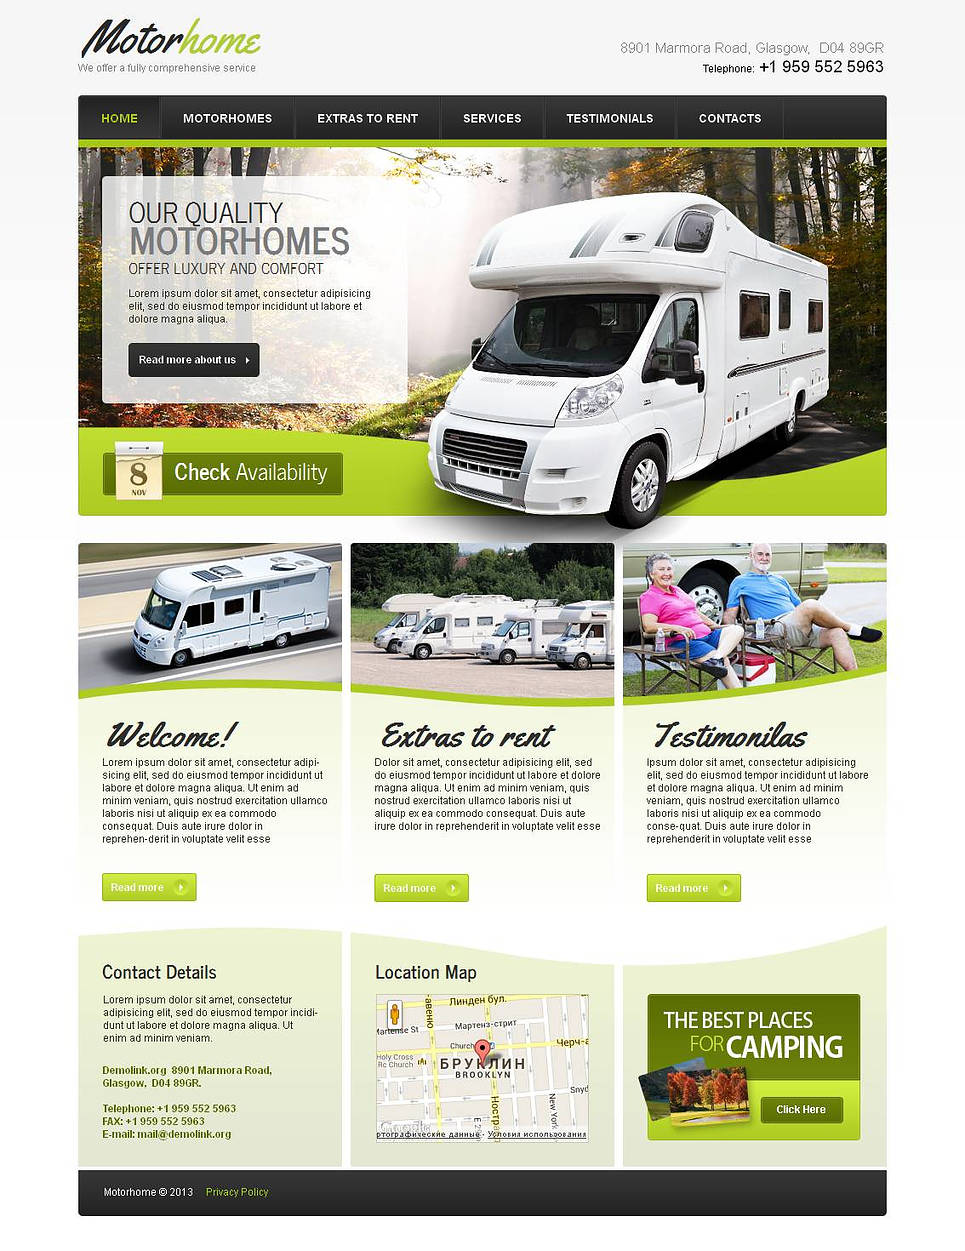 Motorhome Campground Website Template - image